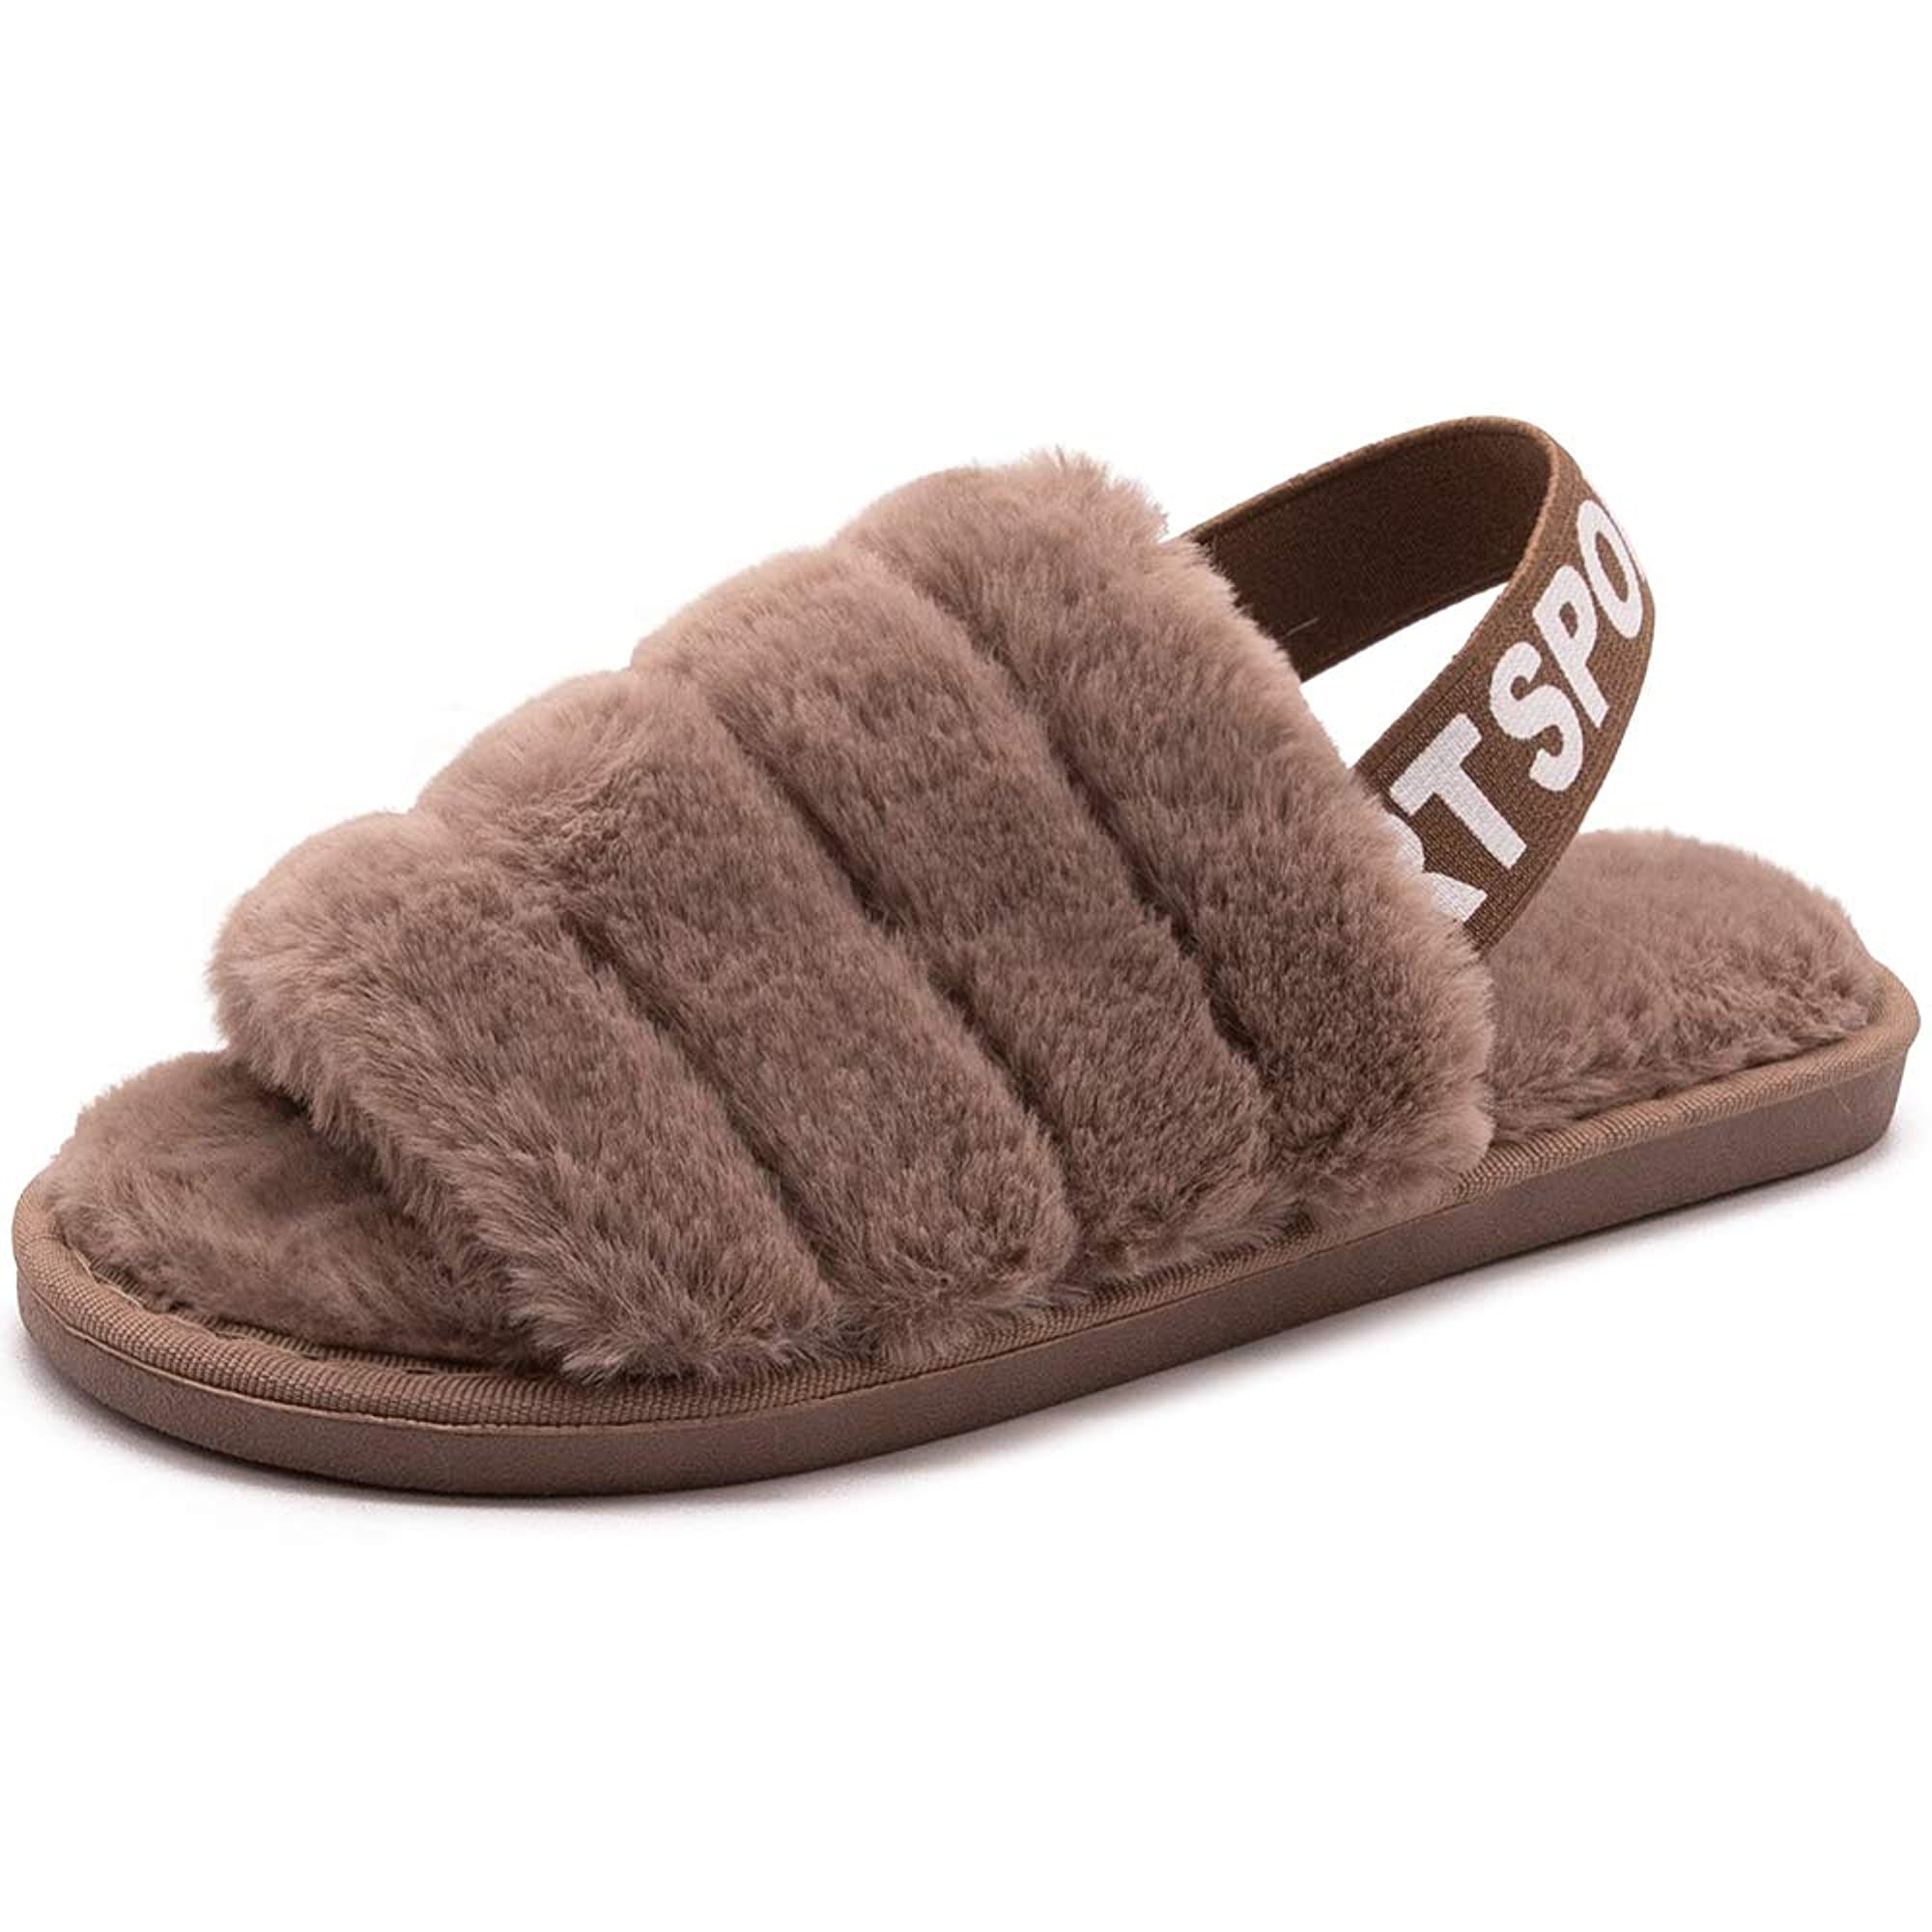 Indoor Fuzzy Slippers With Elastic Strap